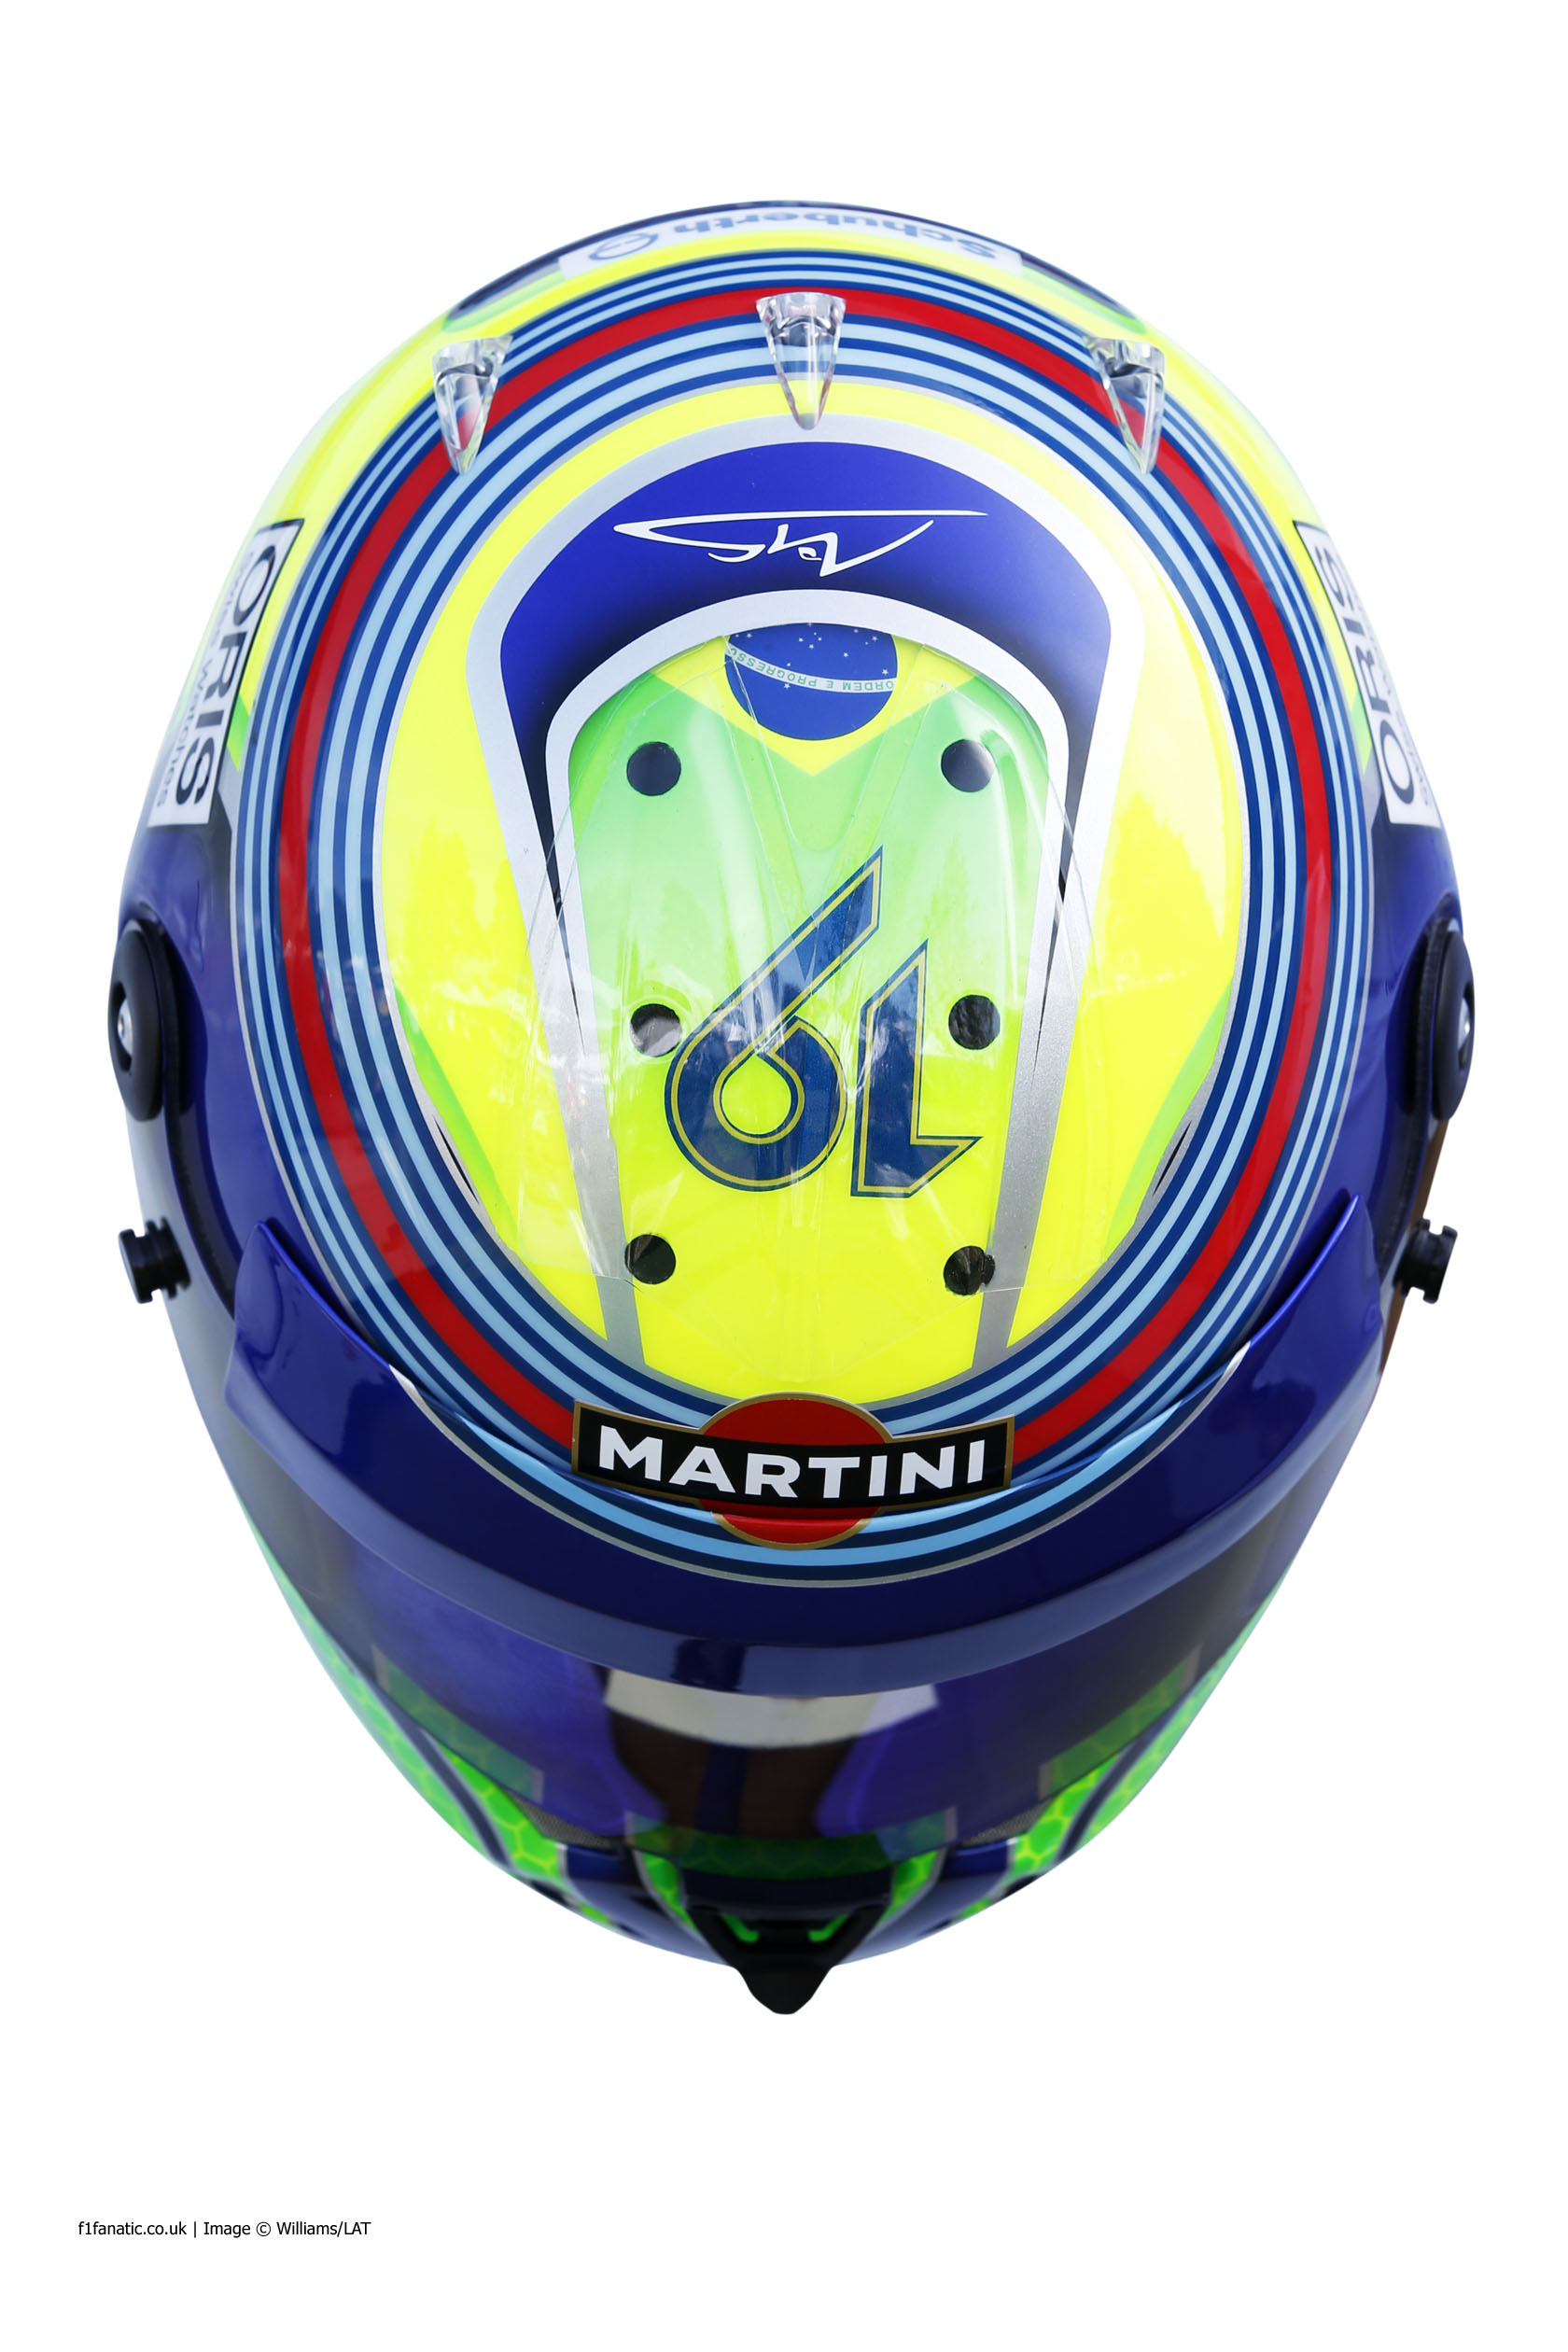 Felipe Massa, Williams, helmet, 2014